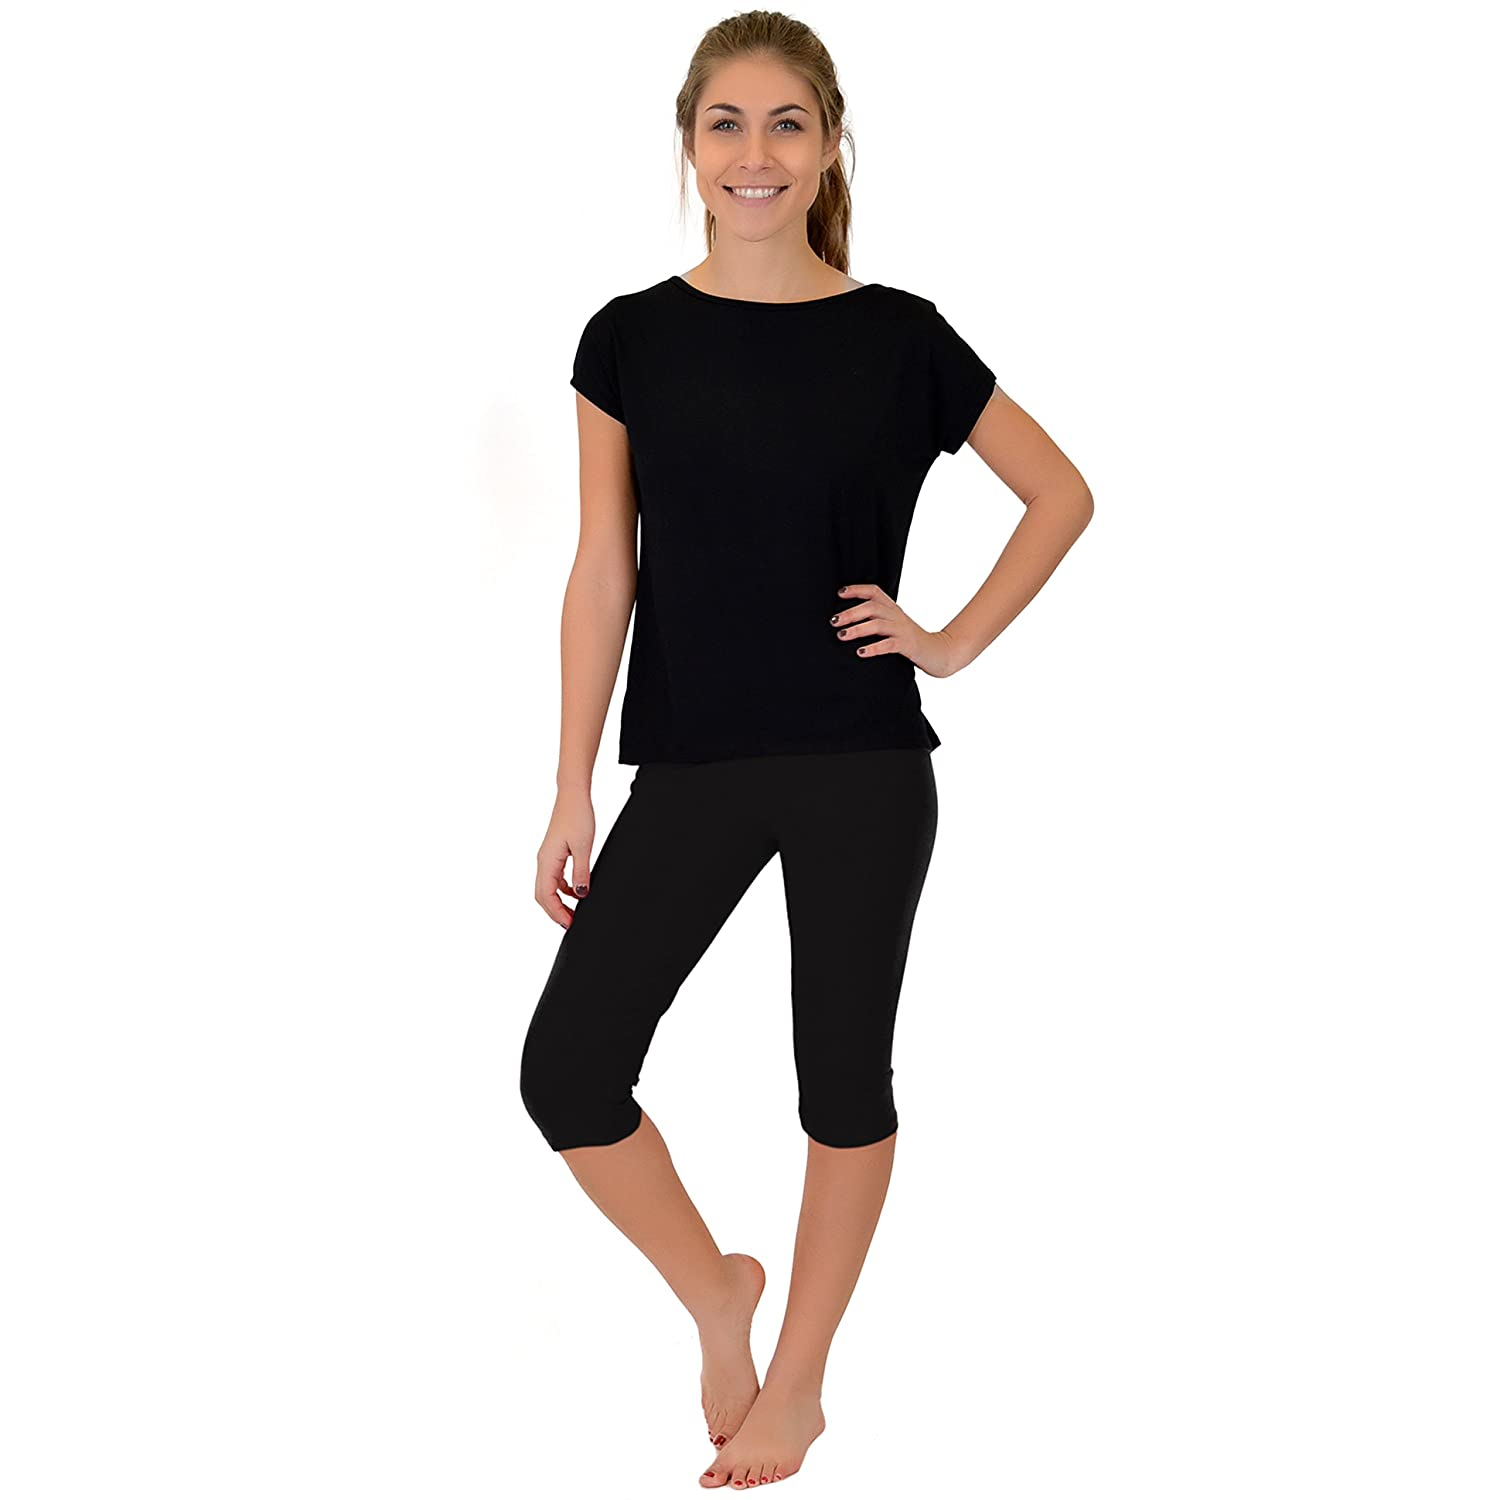 1a8a2ac861ff8 Stretch is Comfort Women s Circuit Knee-Length Leggings at Amazon Women s  Clothing store